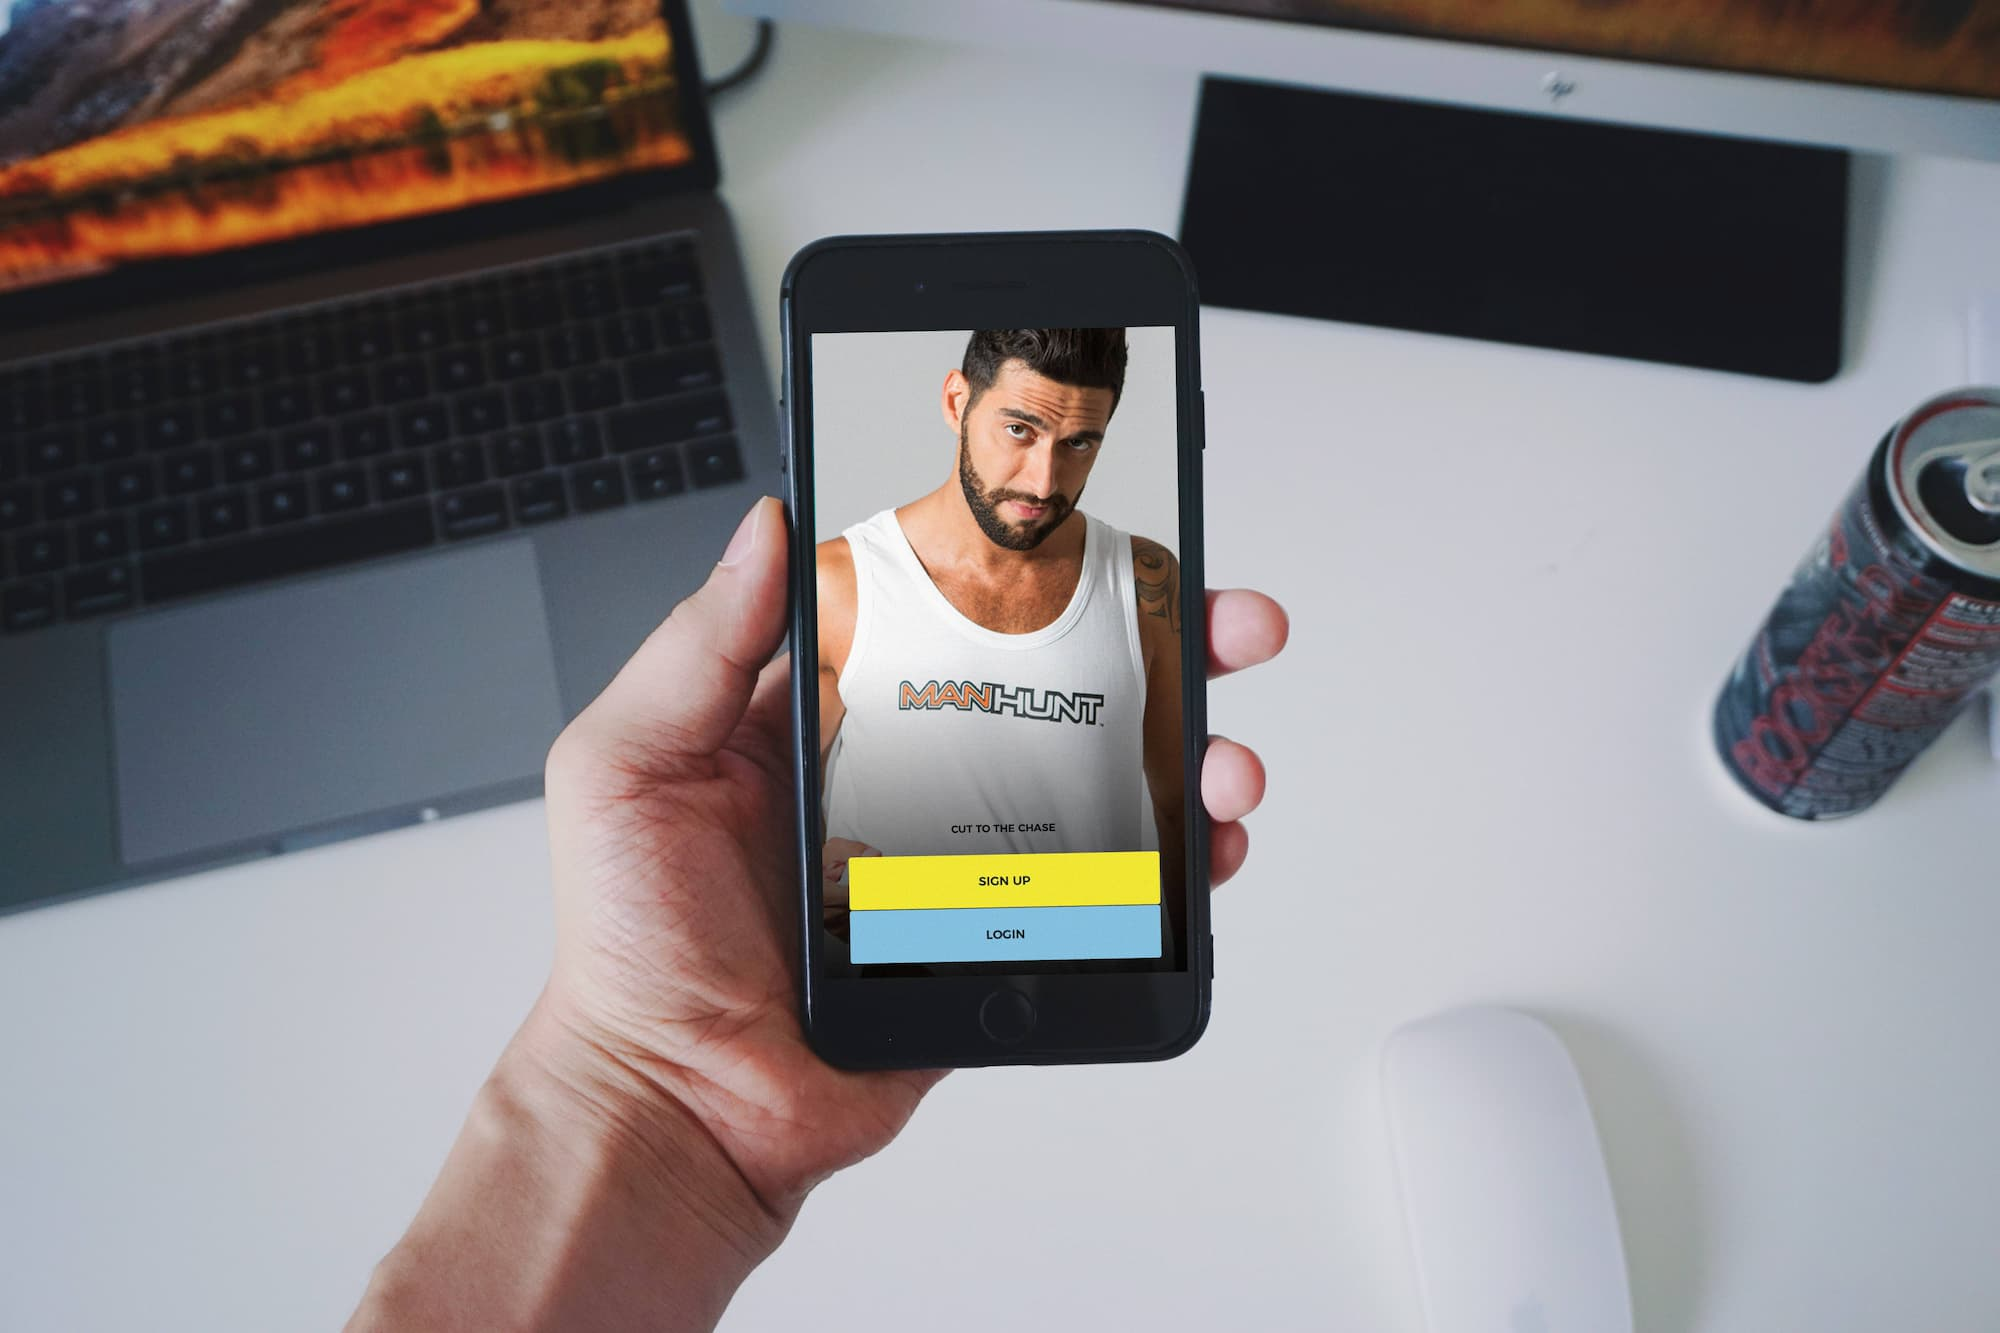 Gay dating app Manhunt hacked, exposing thousands of users' data